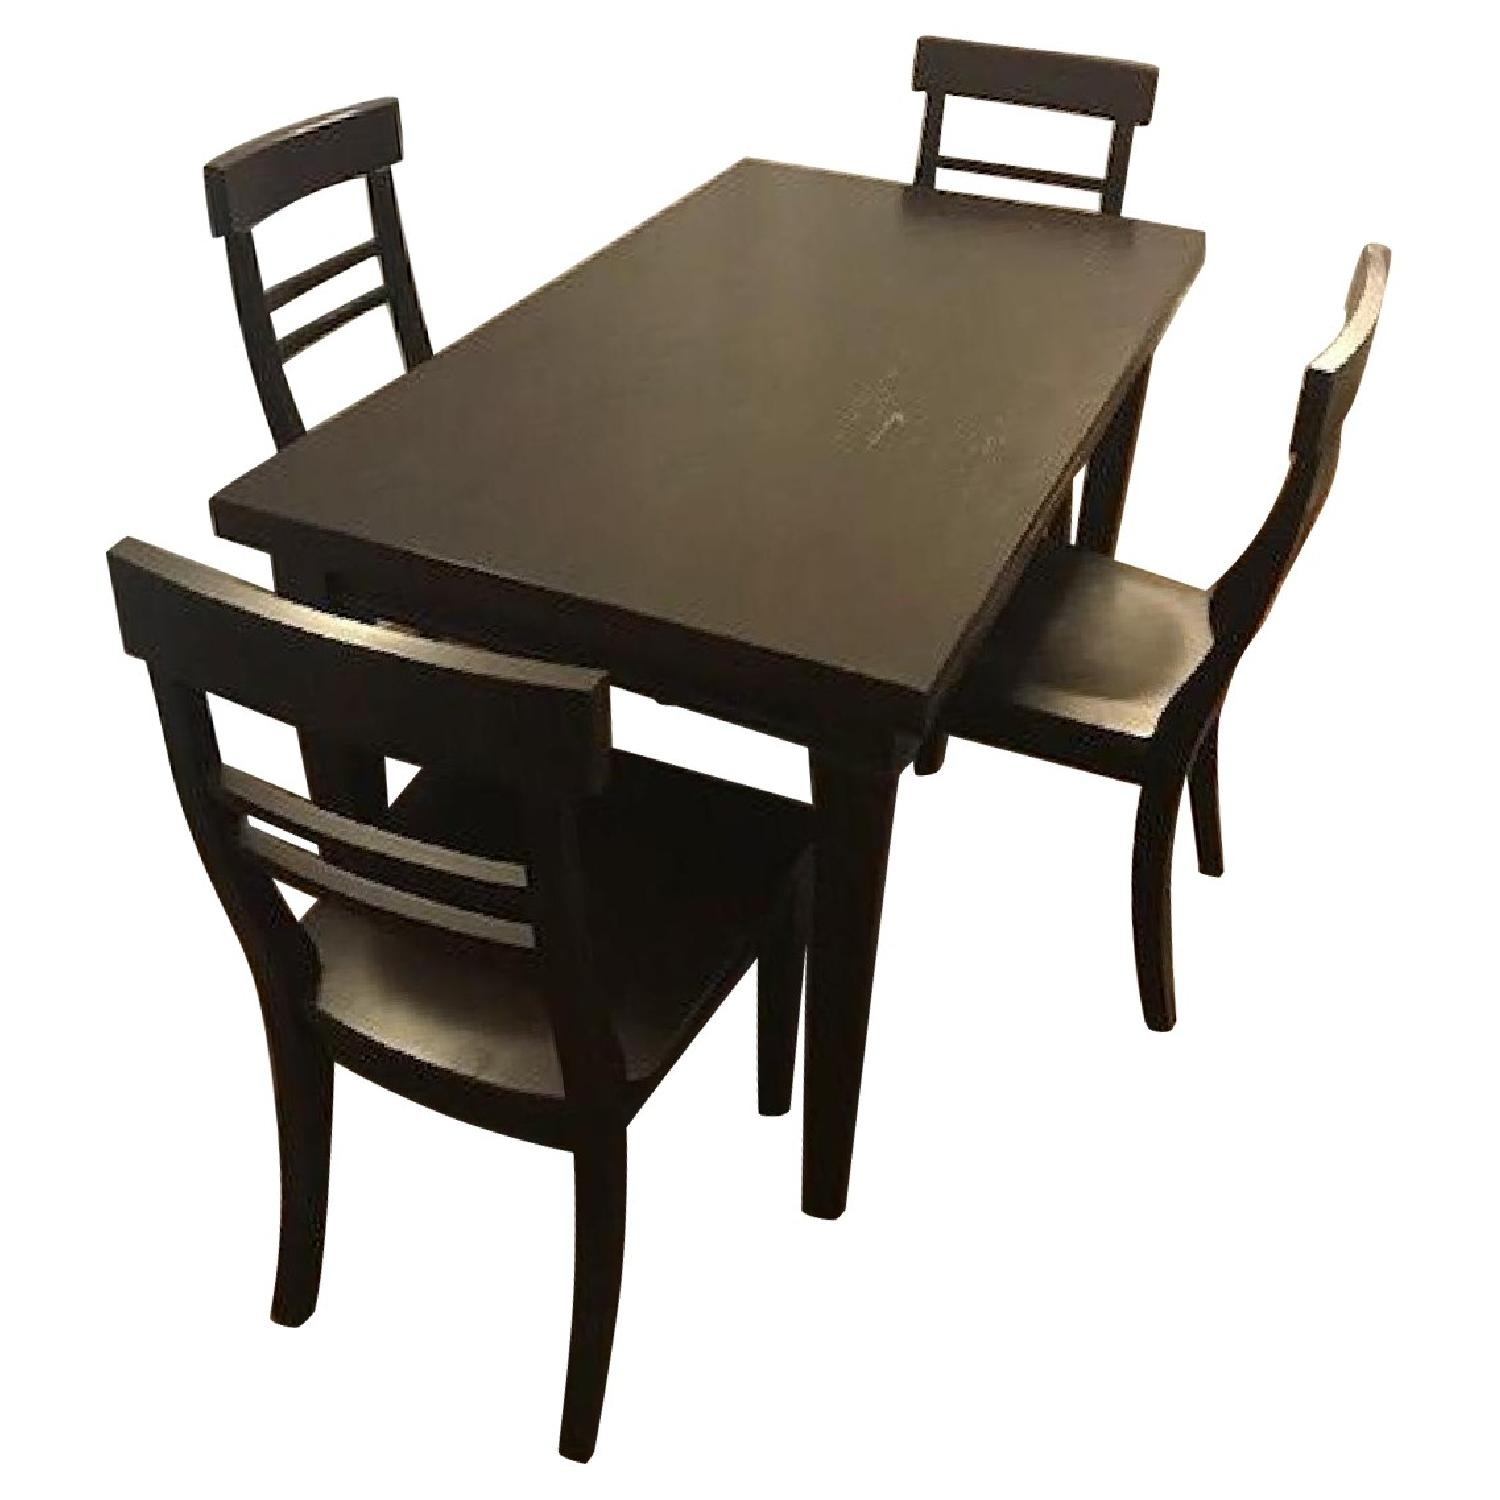 Crate & Barrel Cabria Dining Table w/ 4 Chairs